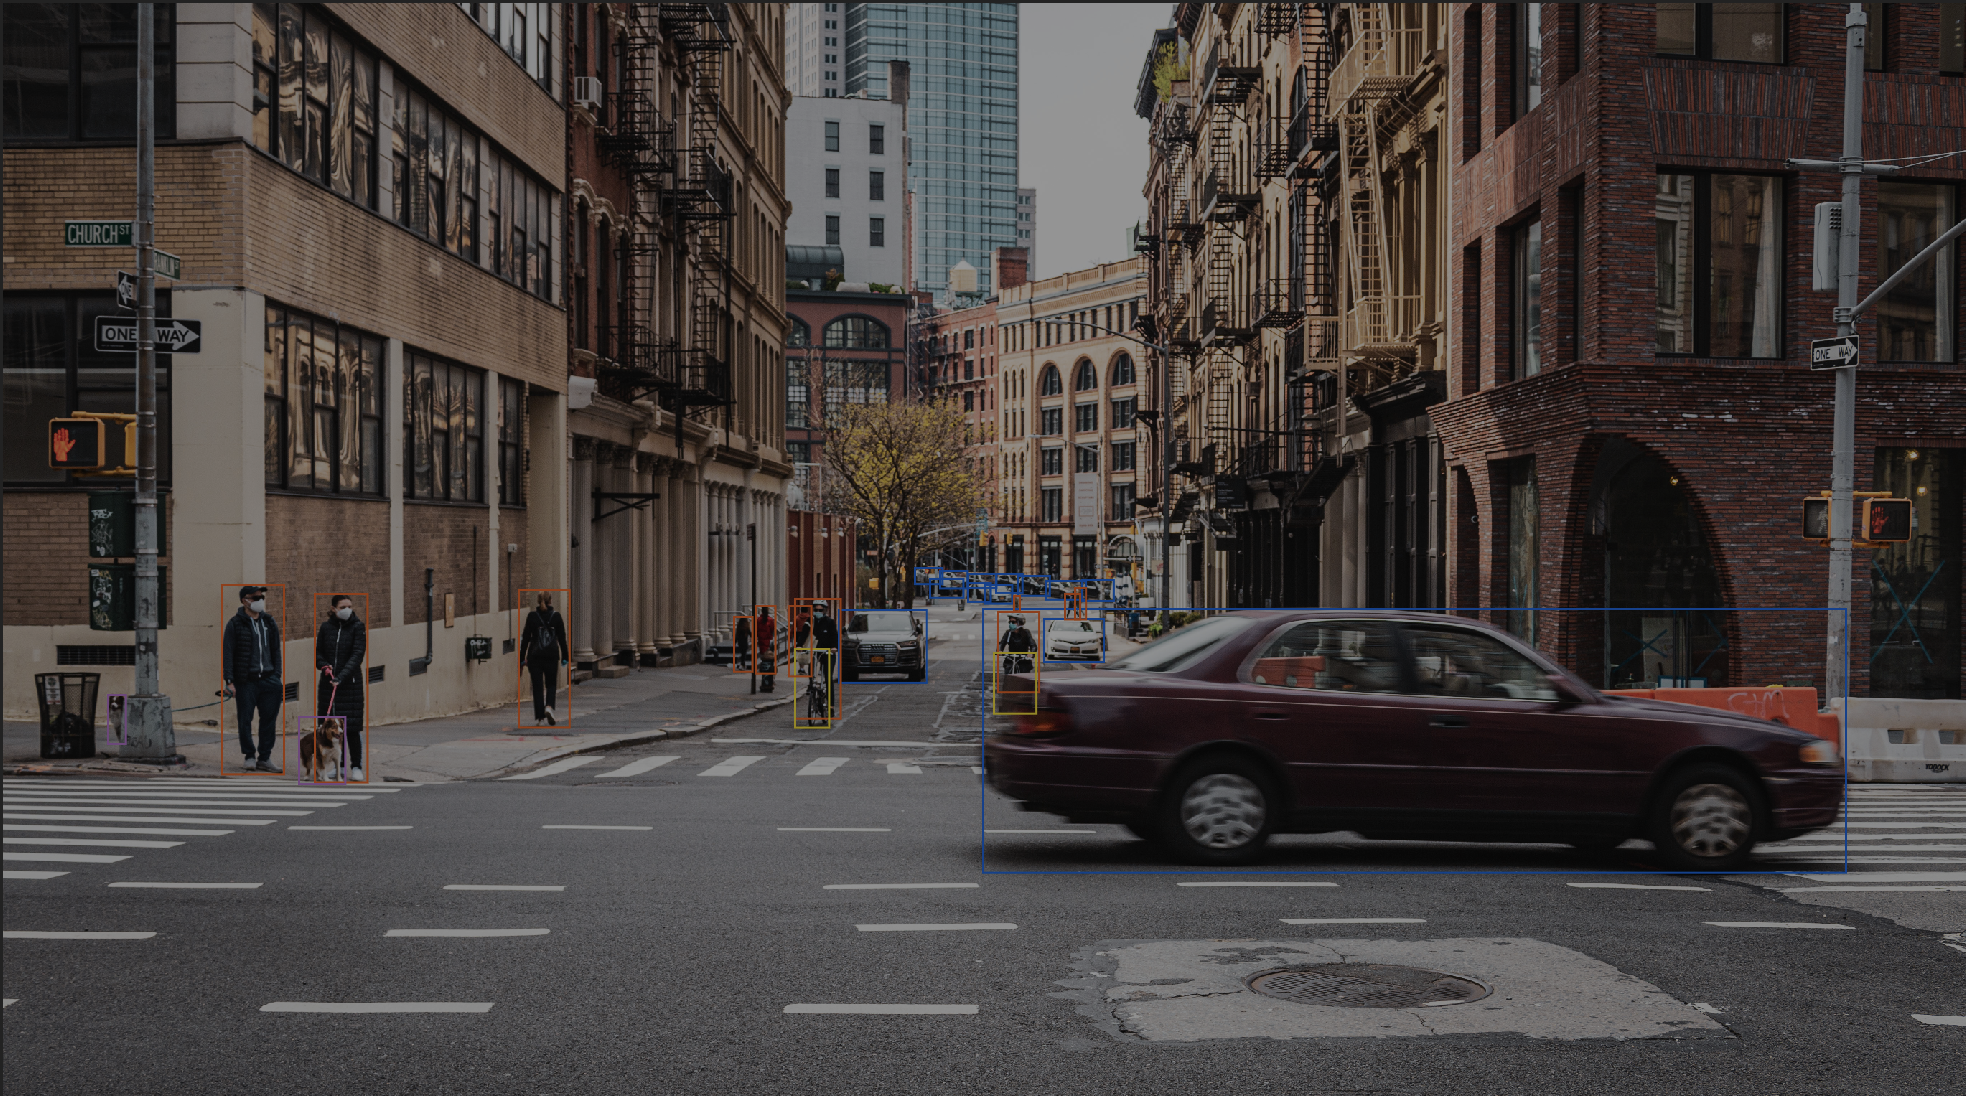 2D bounding boxes -  annotated NYC street